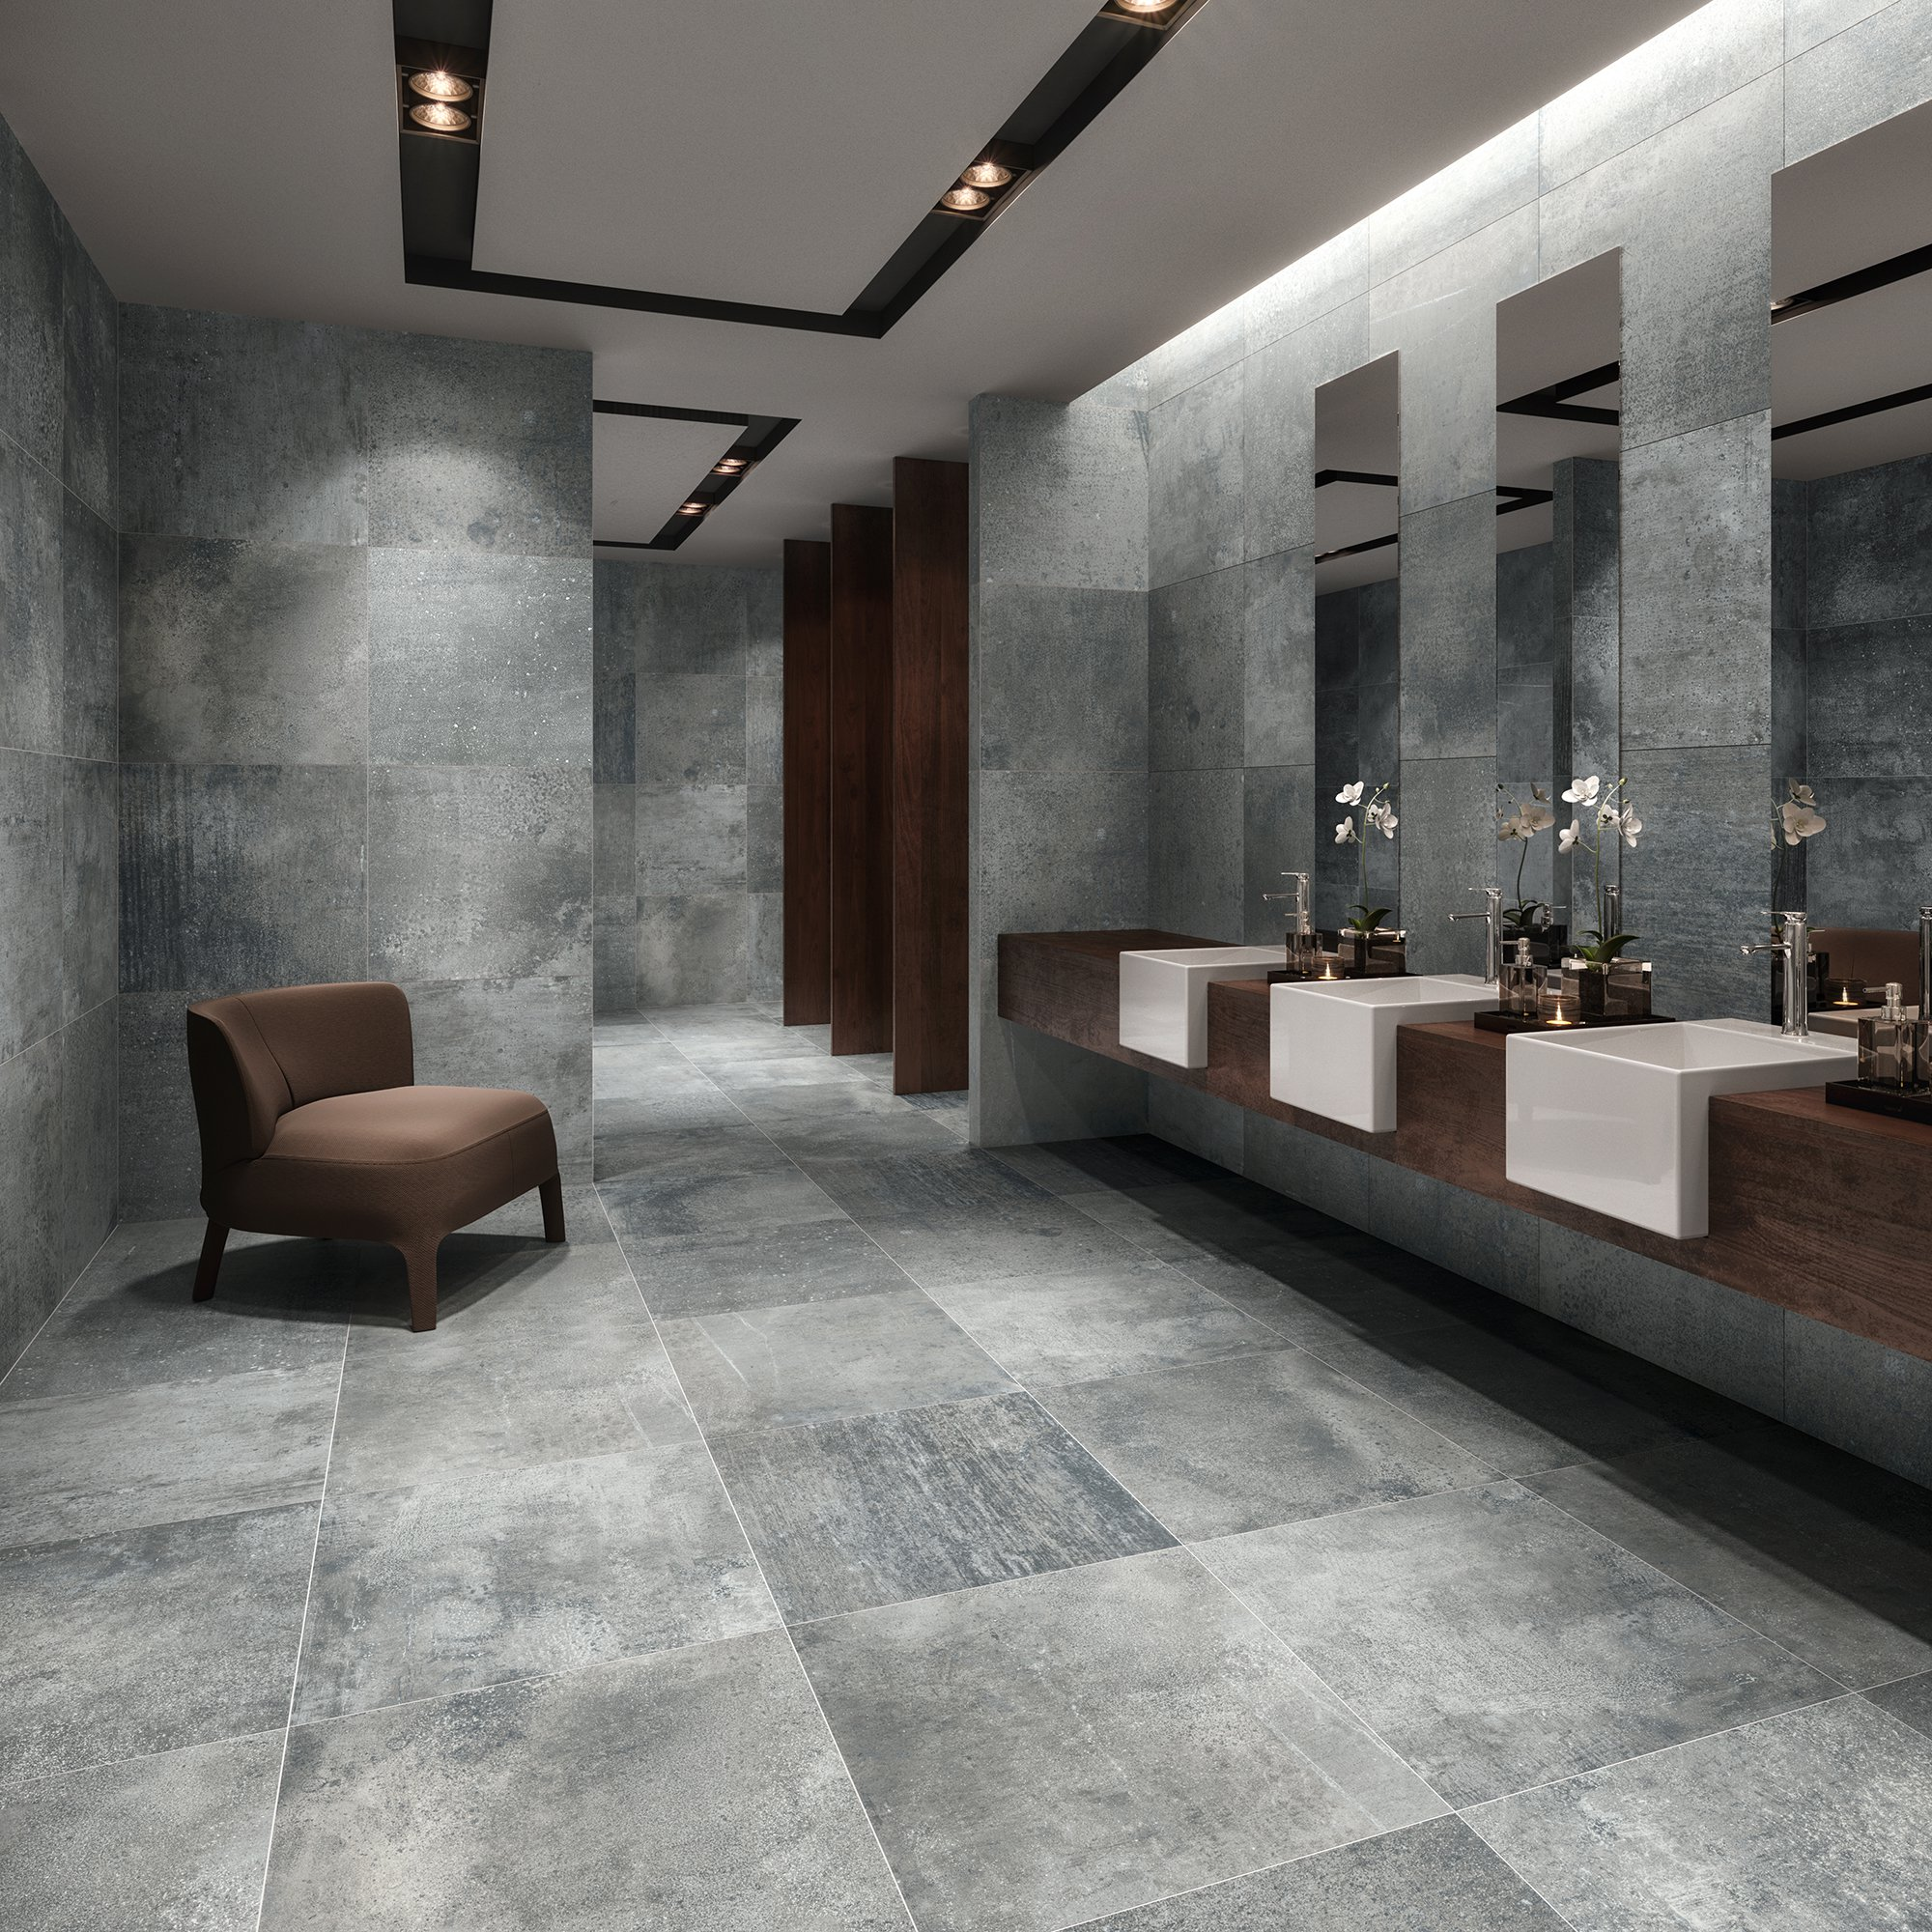 Oxide_OXI02N_Dark Grey_Natural_600x600_Bathroom [1].jpg